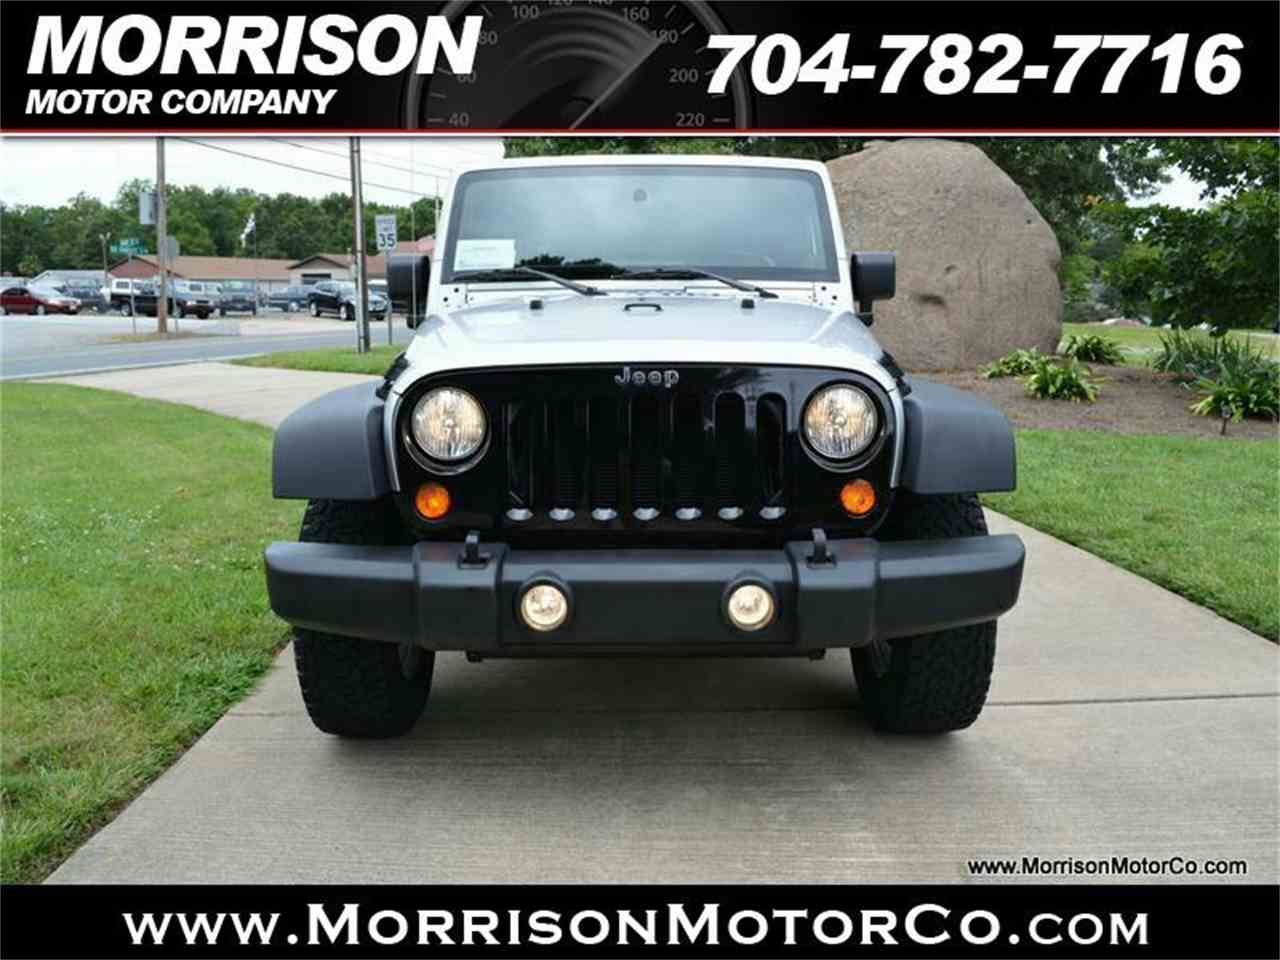 2011 Jeep Wrangler for Sale ClassicCars